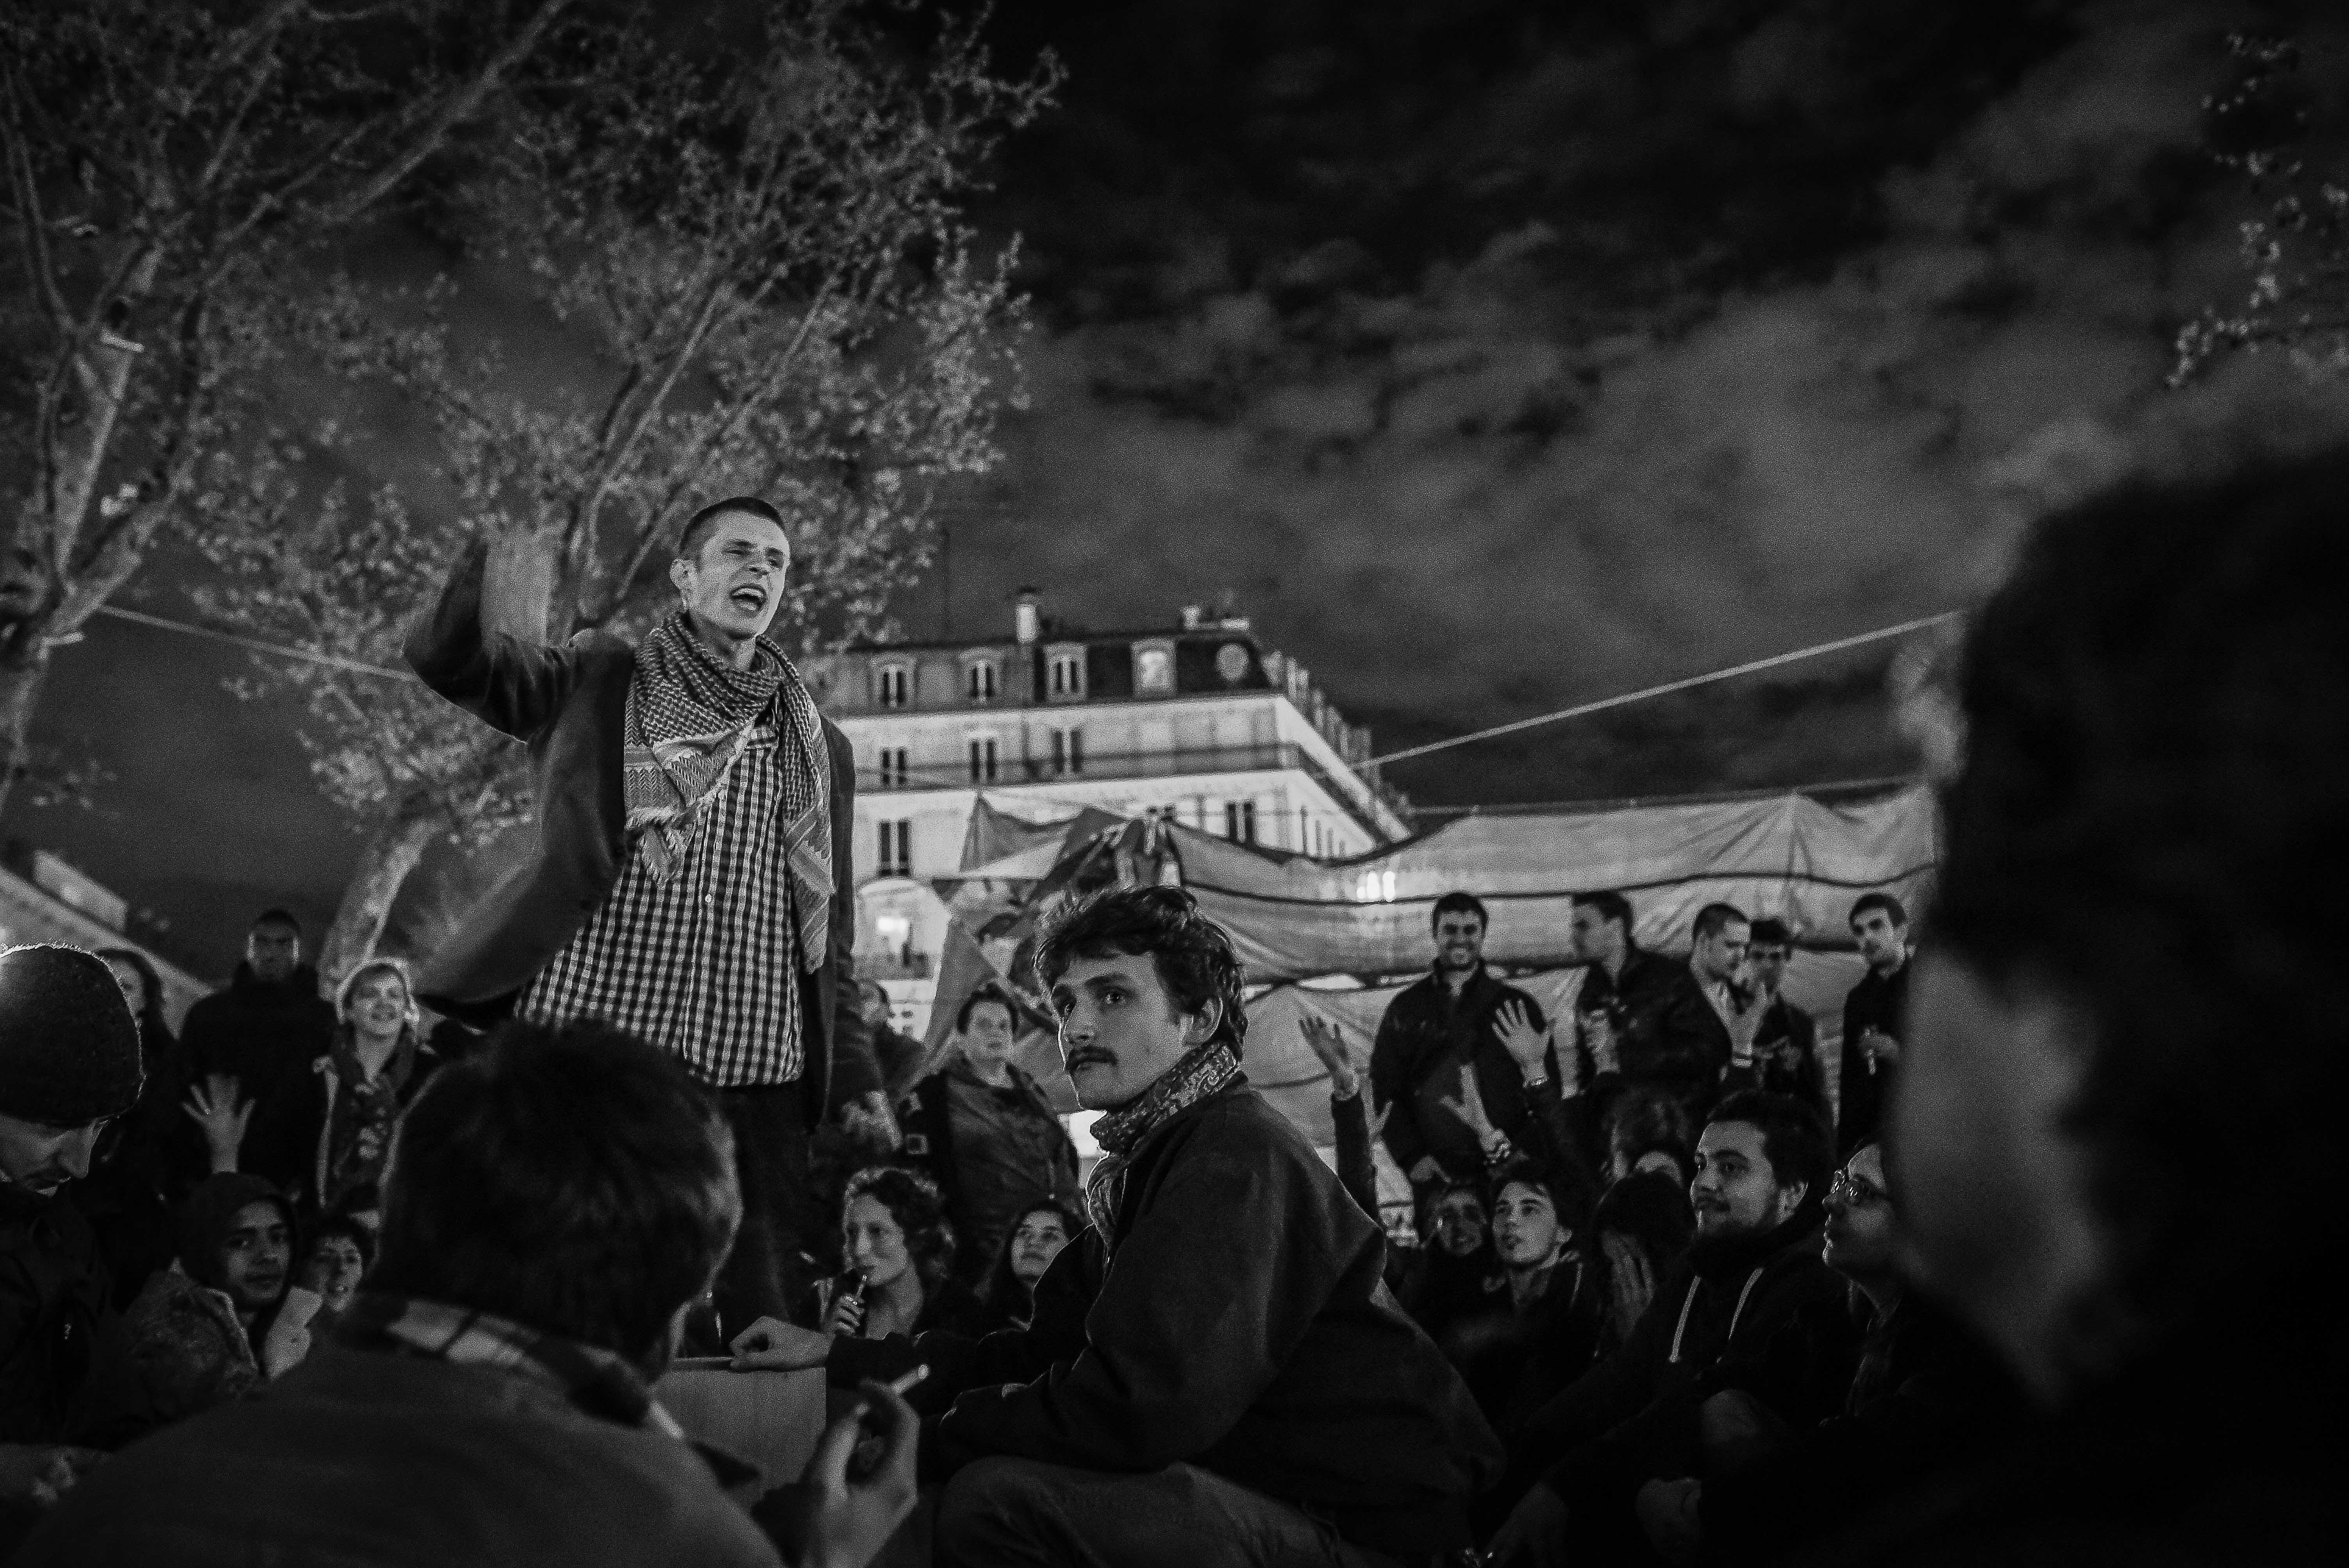 An activist from the Southern city of Montpellier speaking at the General Assembly of Nuit debout. Paris, April 2016. Credit: Laurent Gayer